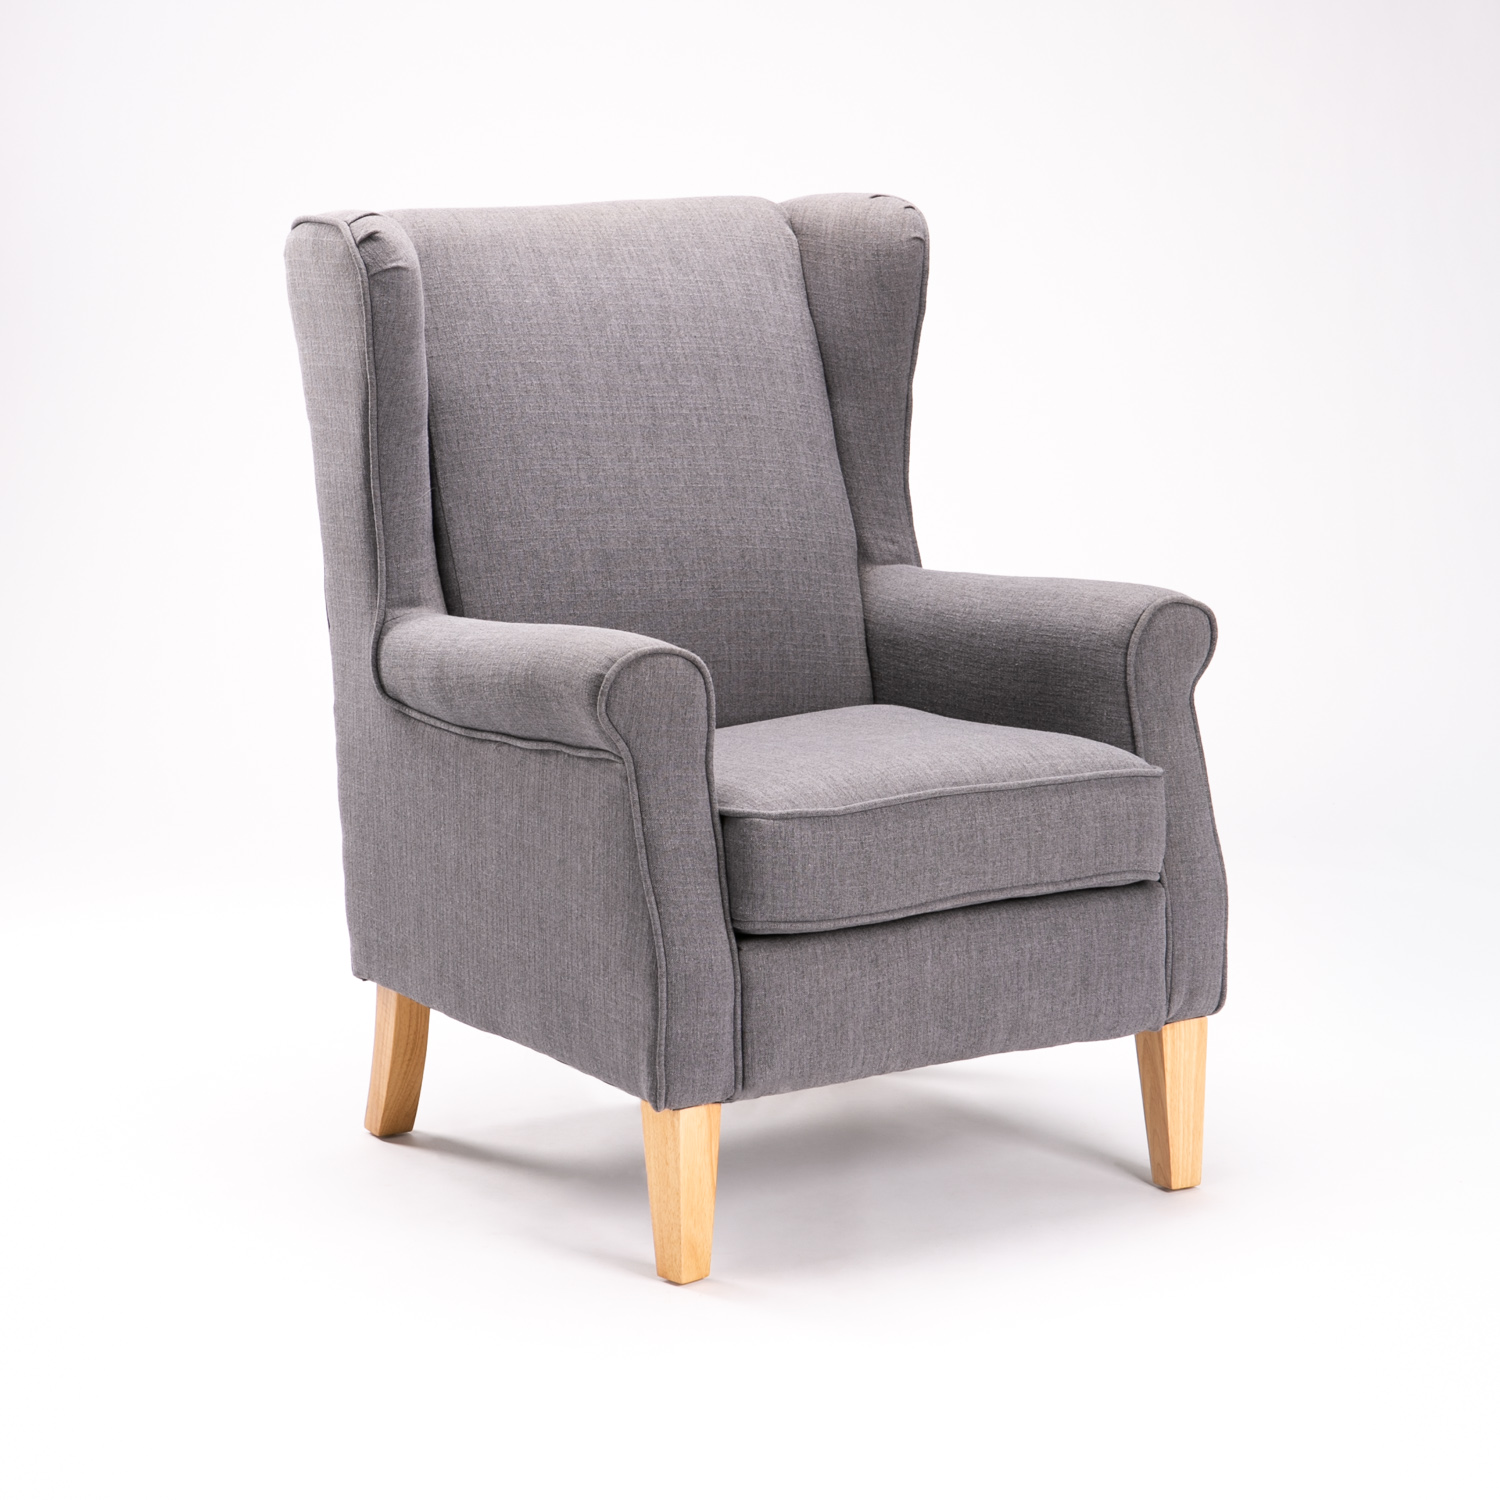 SAM FABRIC WINGBACK ARMCHAIR